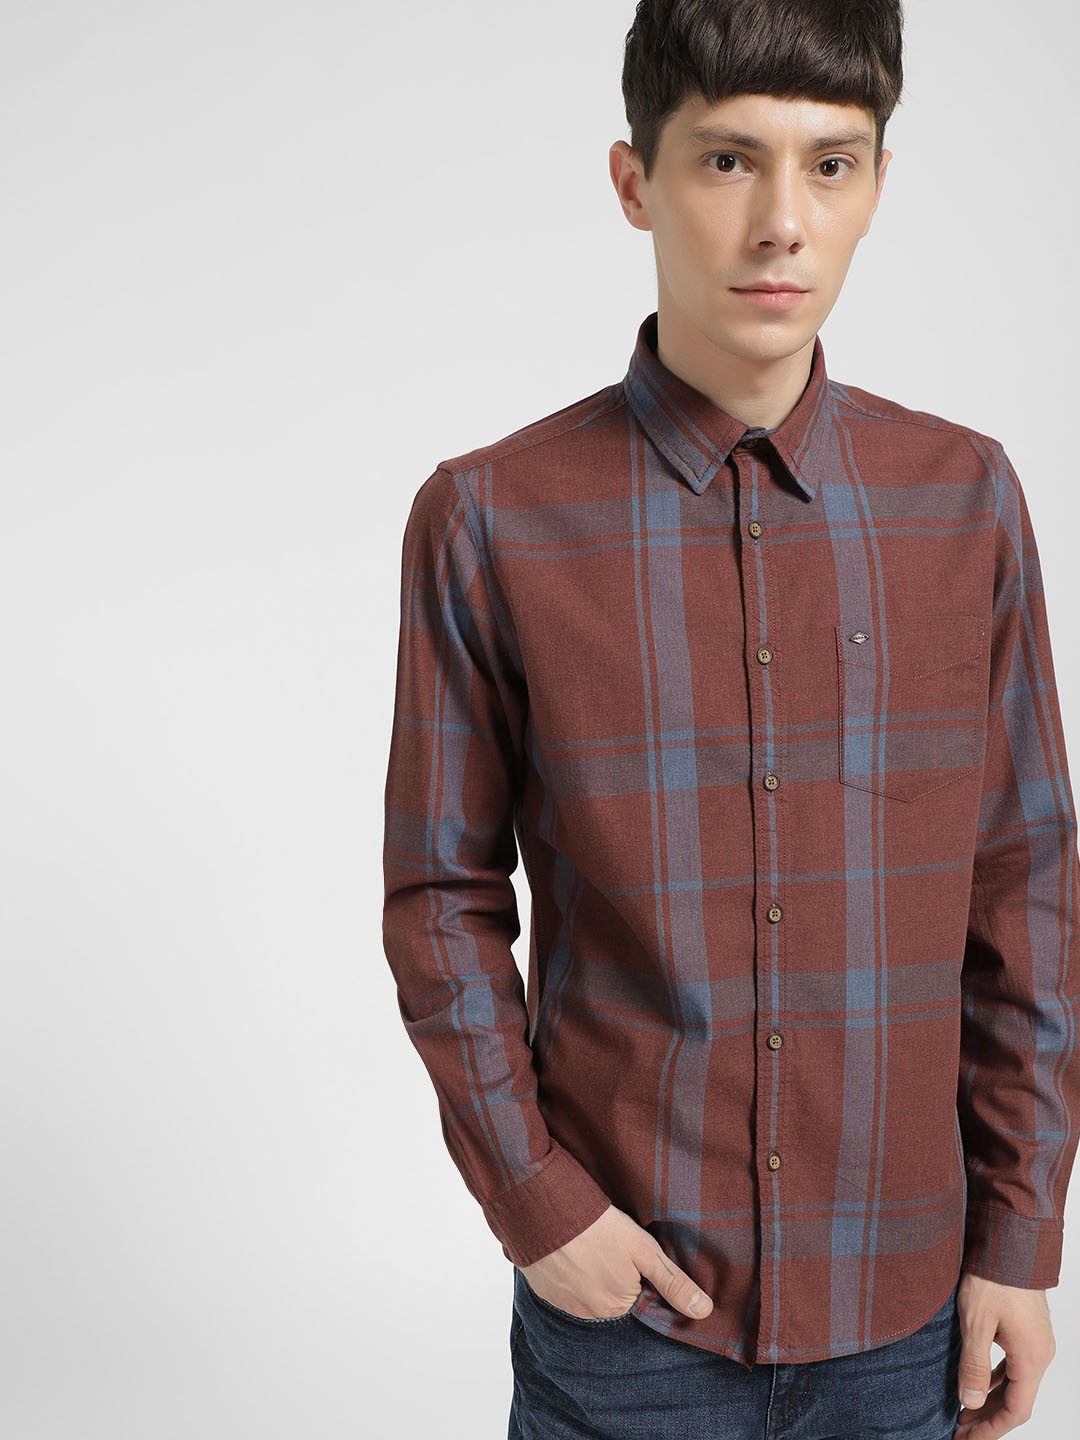 Lee Cooper Rust Woven Multi-Check Shirt 1